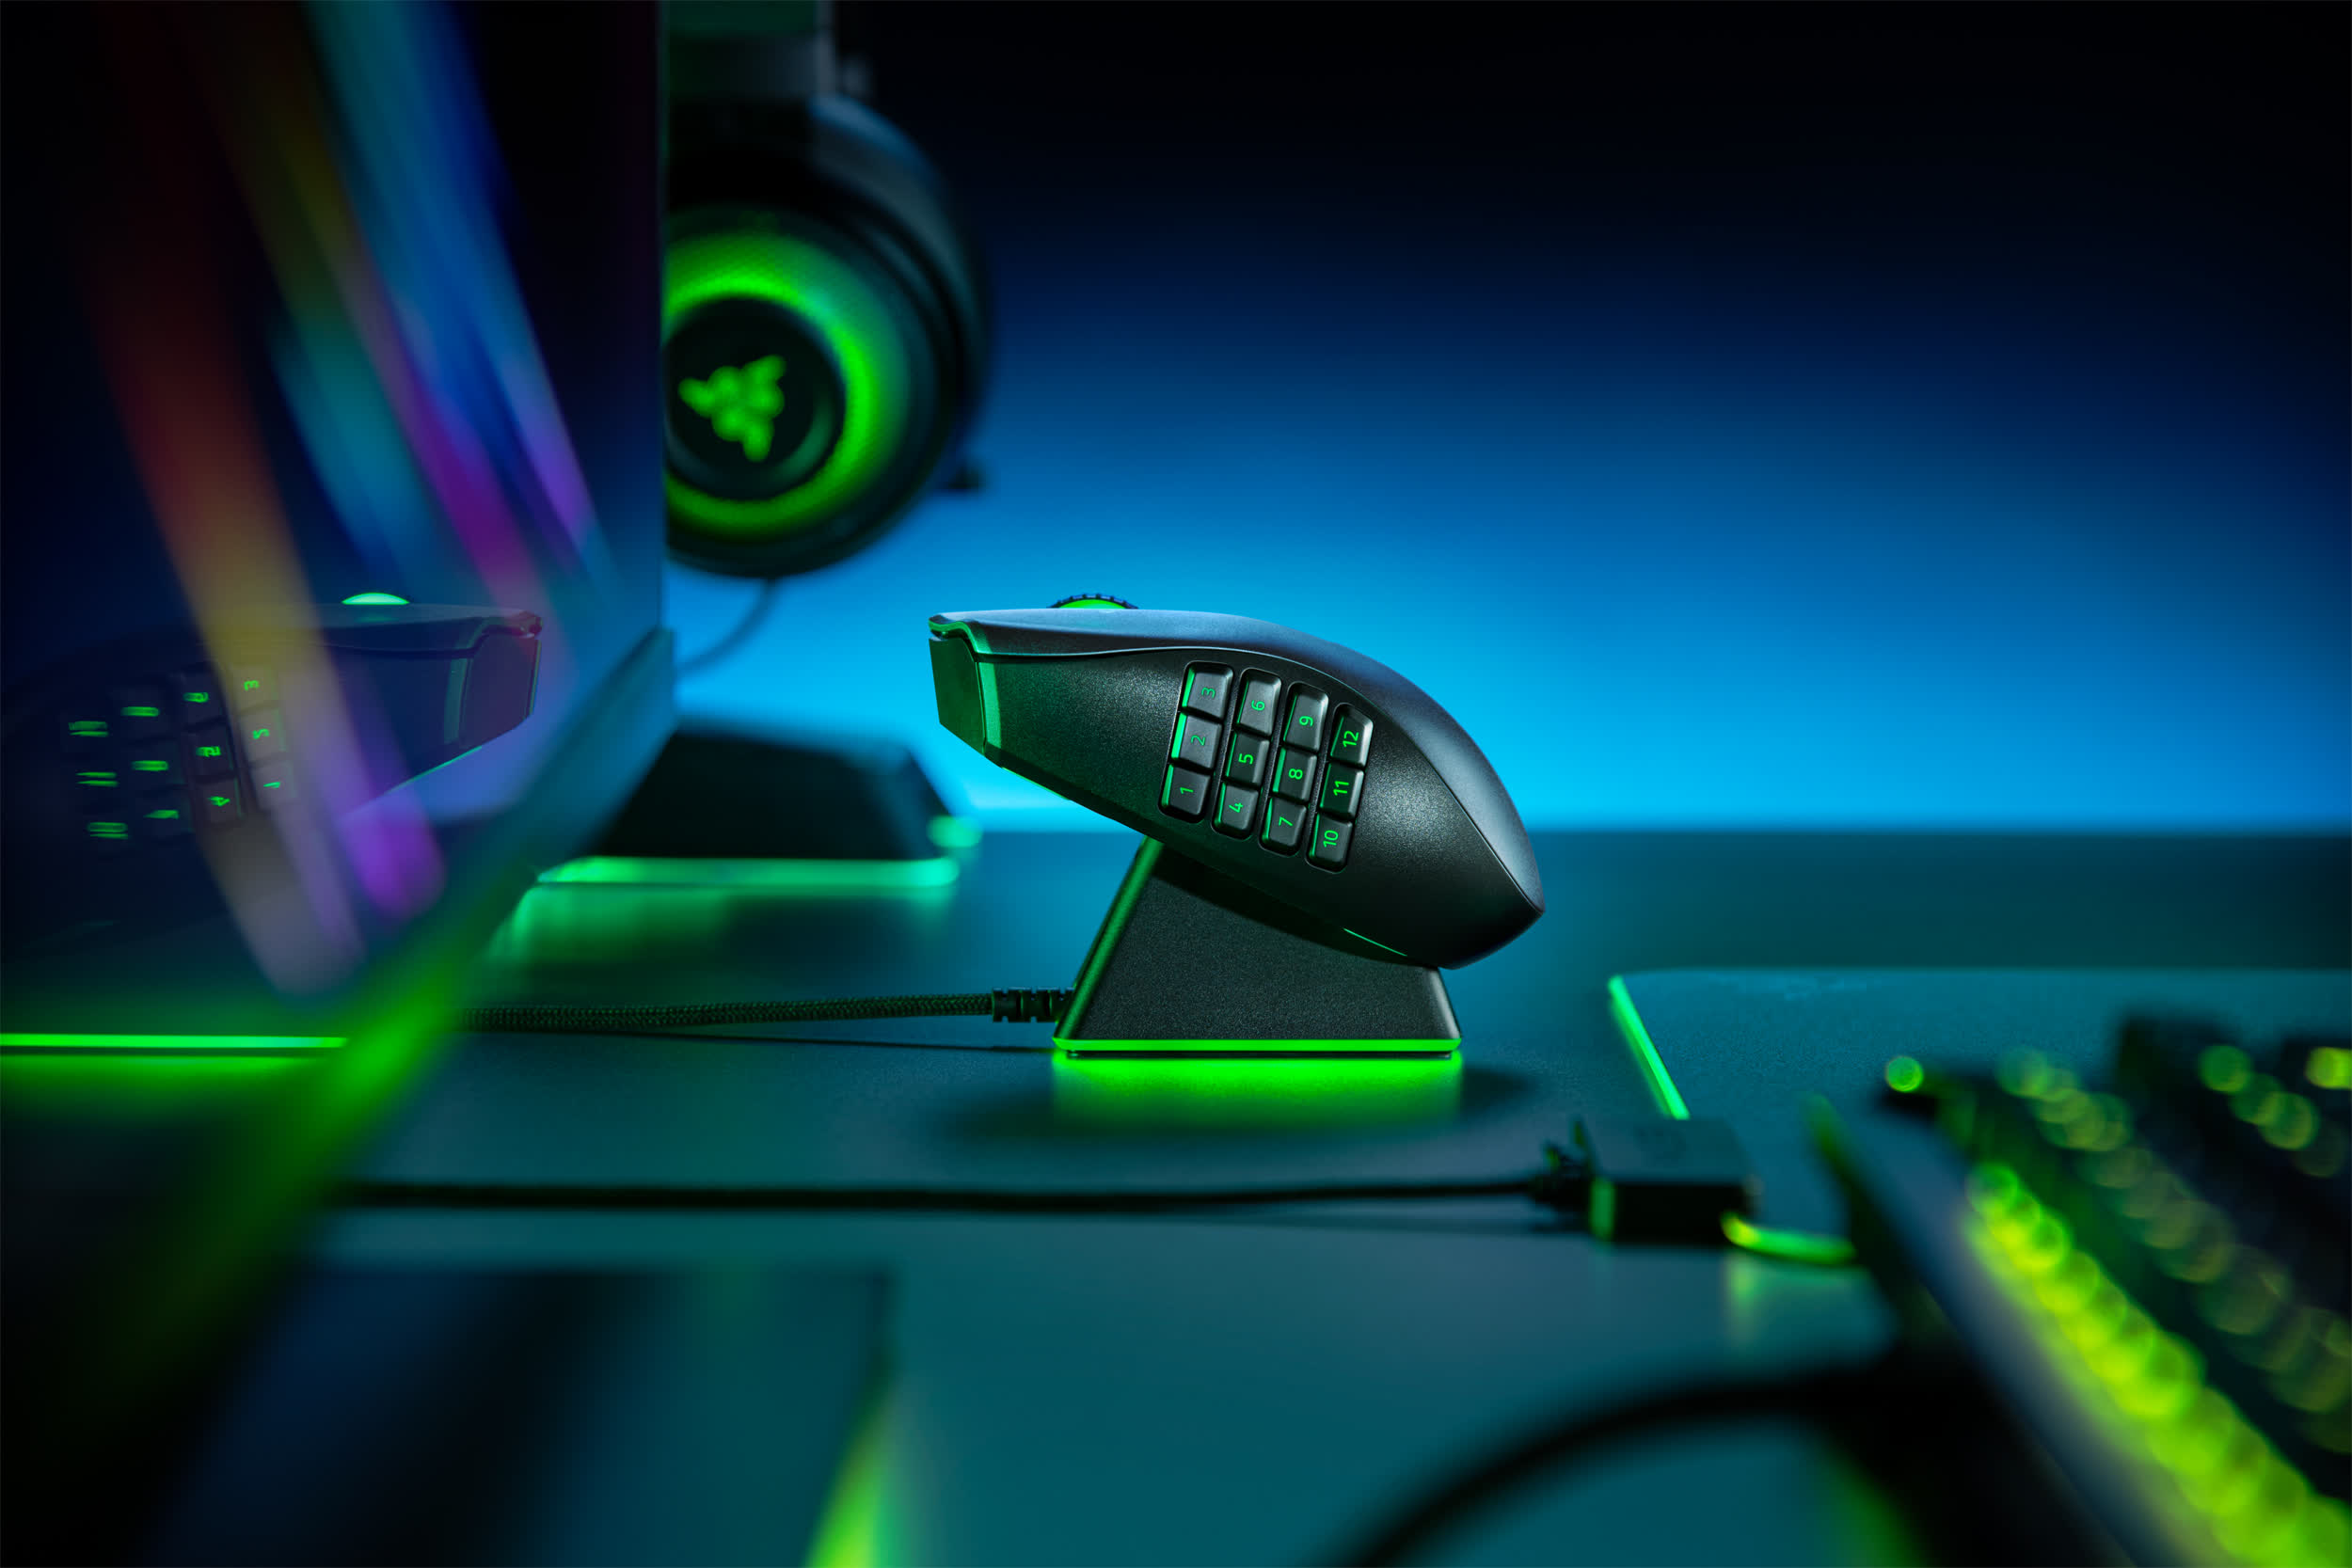 Razer's Naga Pro wireless gaming mouse can adapt to your play style